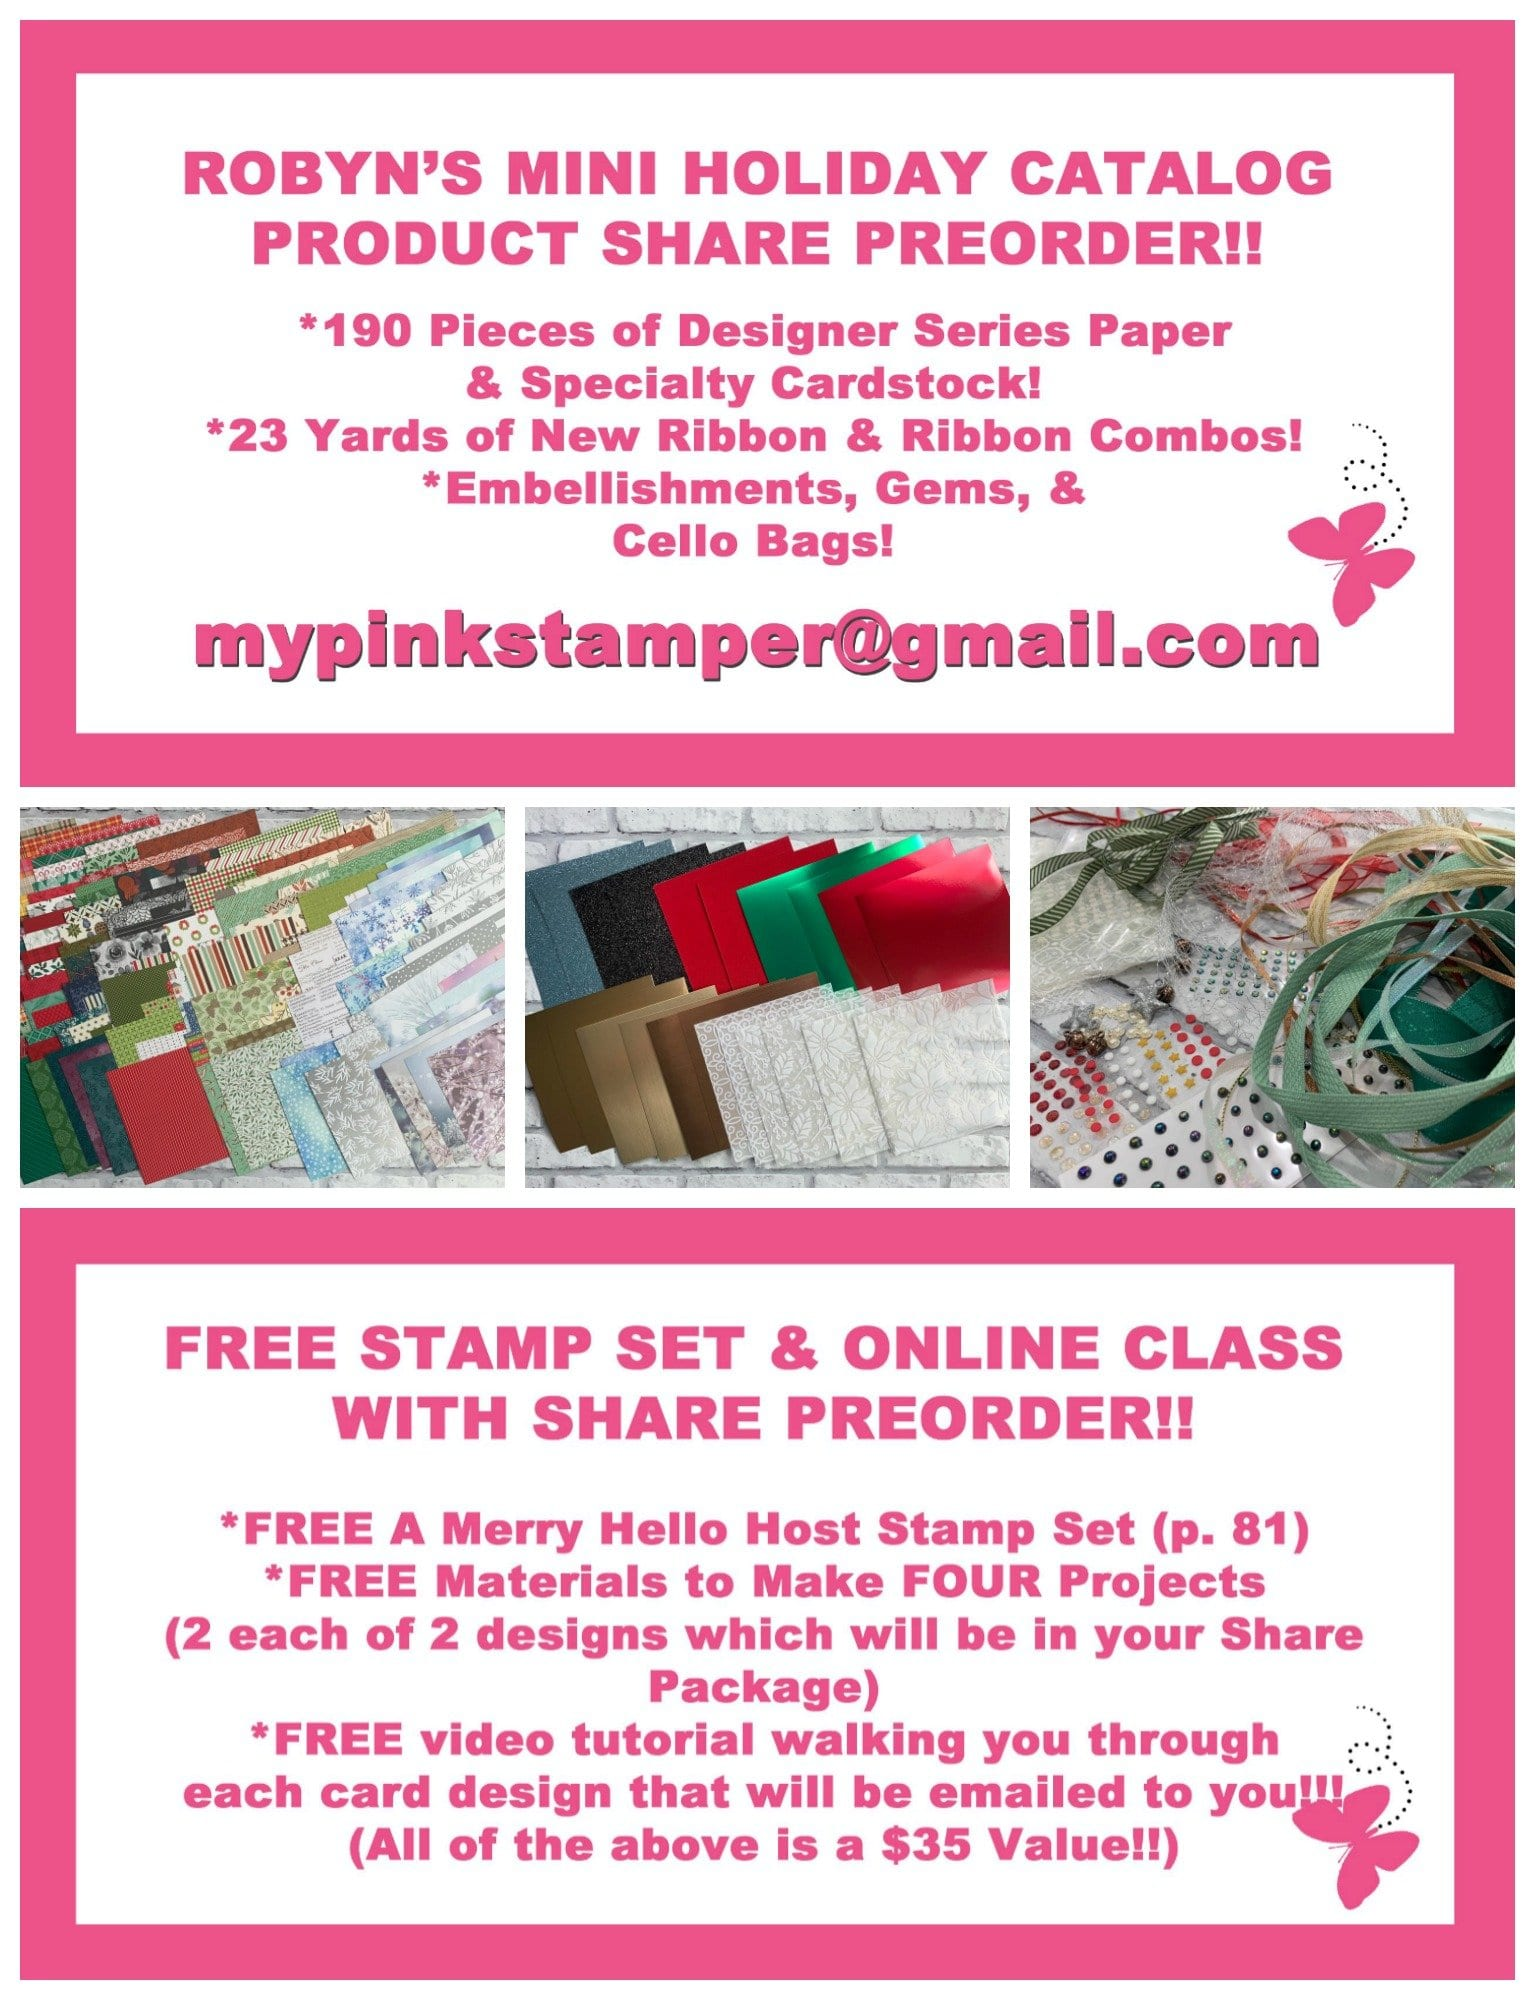 Robyn's Stampin' Up! Holiday Catalog Share Preorder Now Open!